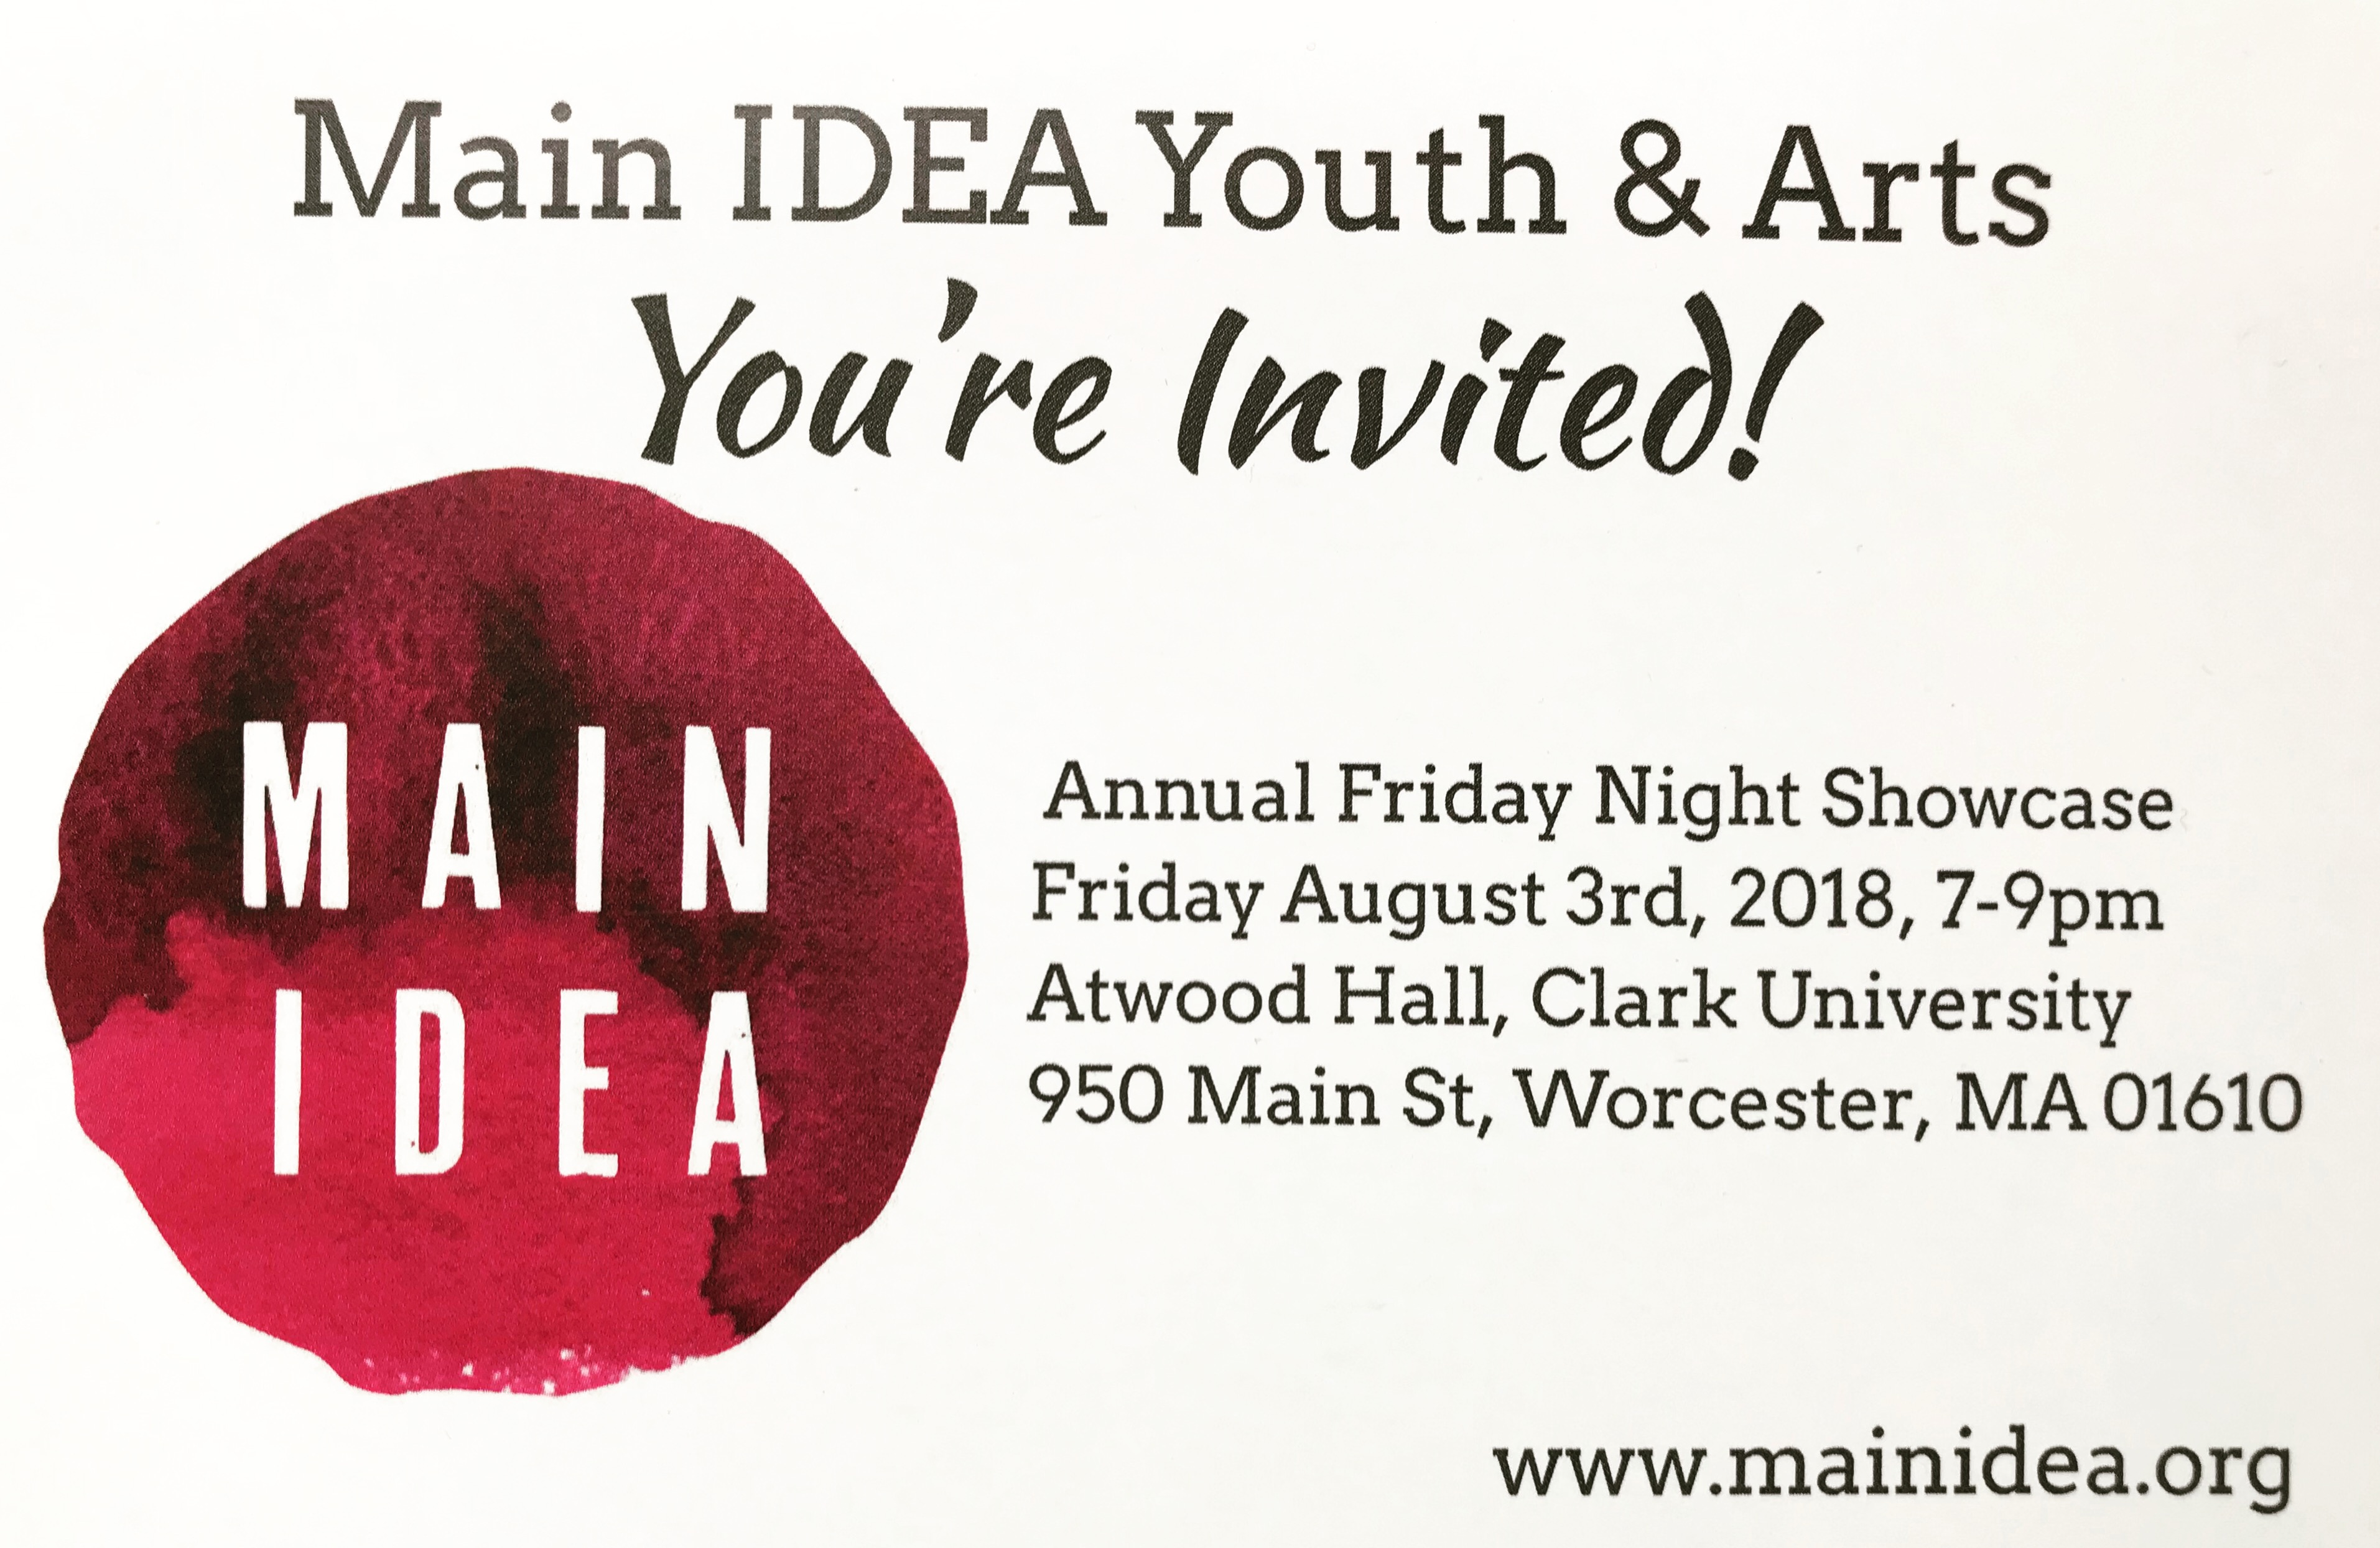 Main IDEA 2018 Friday Night Showcase   Local Event   Discover